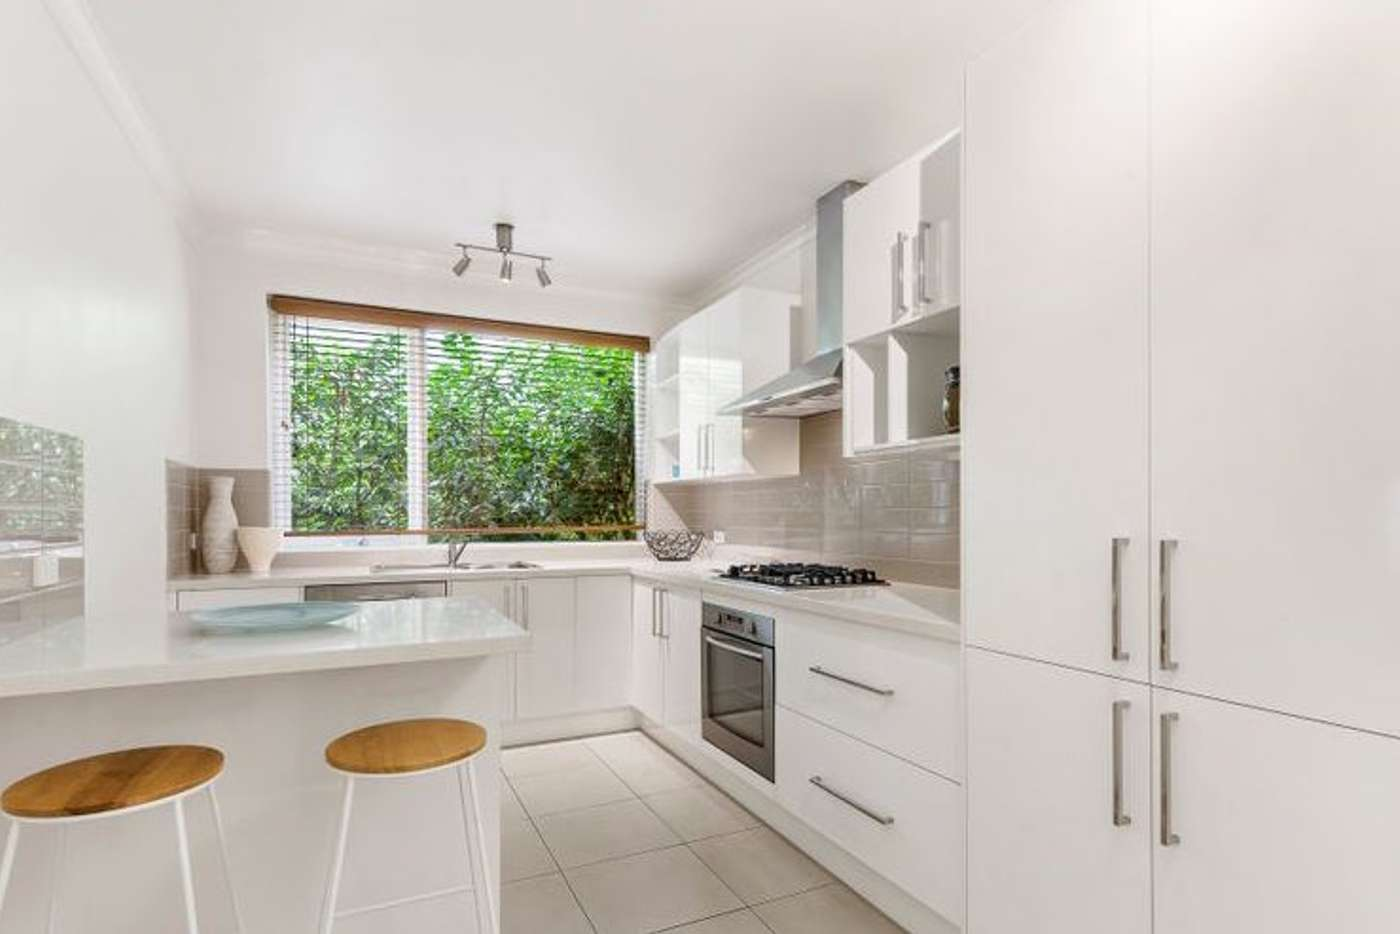 Fifth view of Homely apartment listing, 1/492 Dandenong Road, Caulfield North VIC 3161